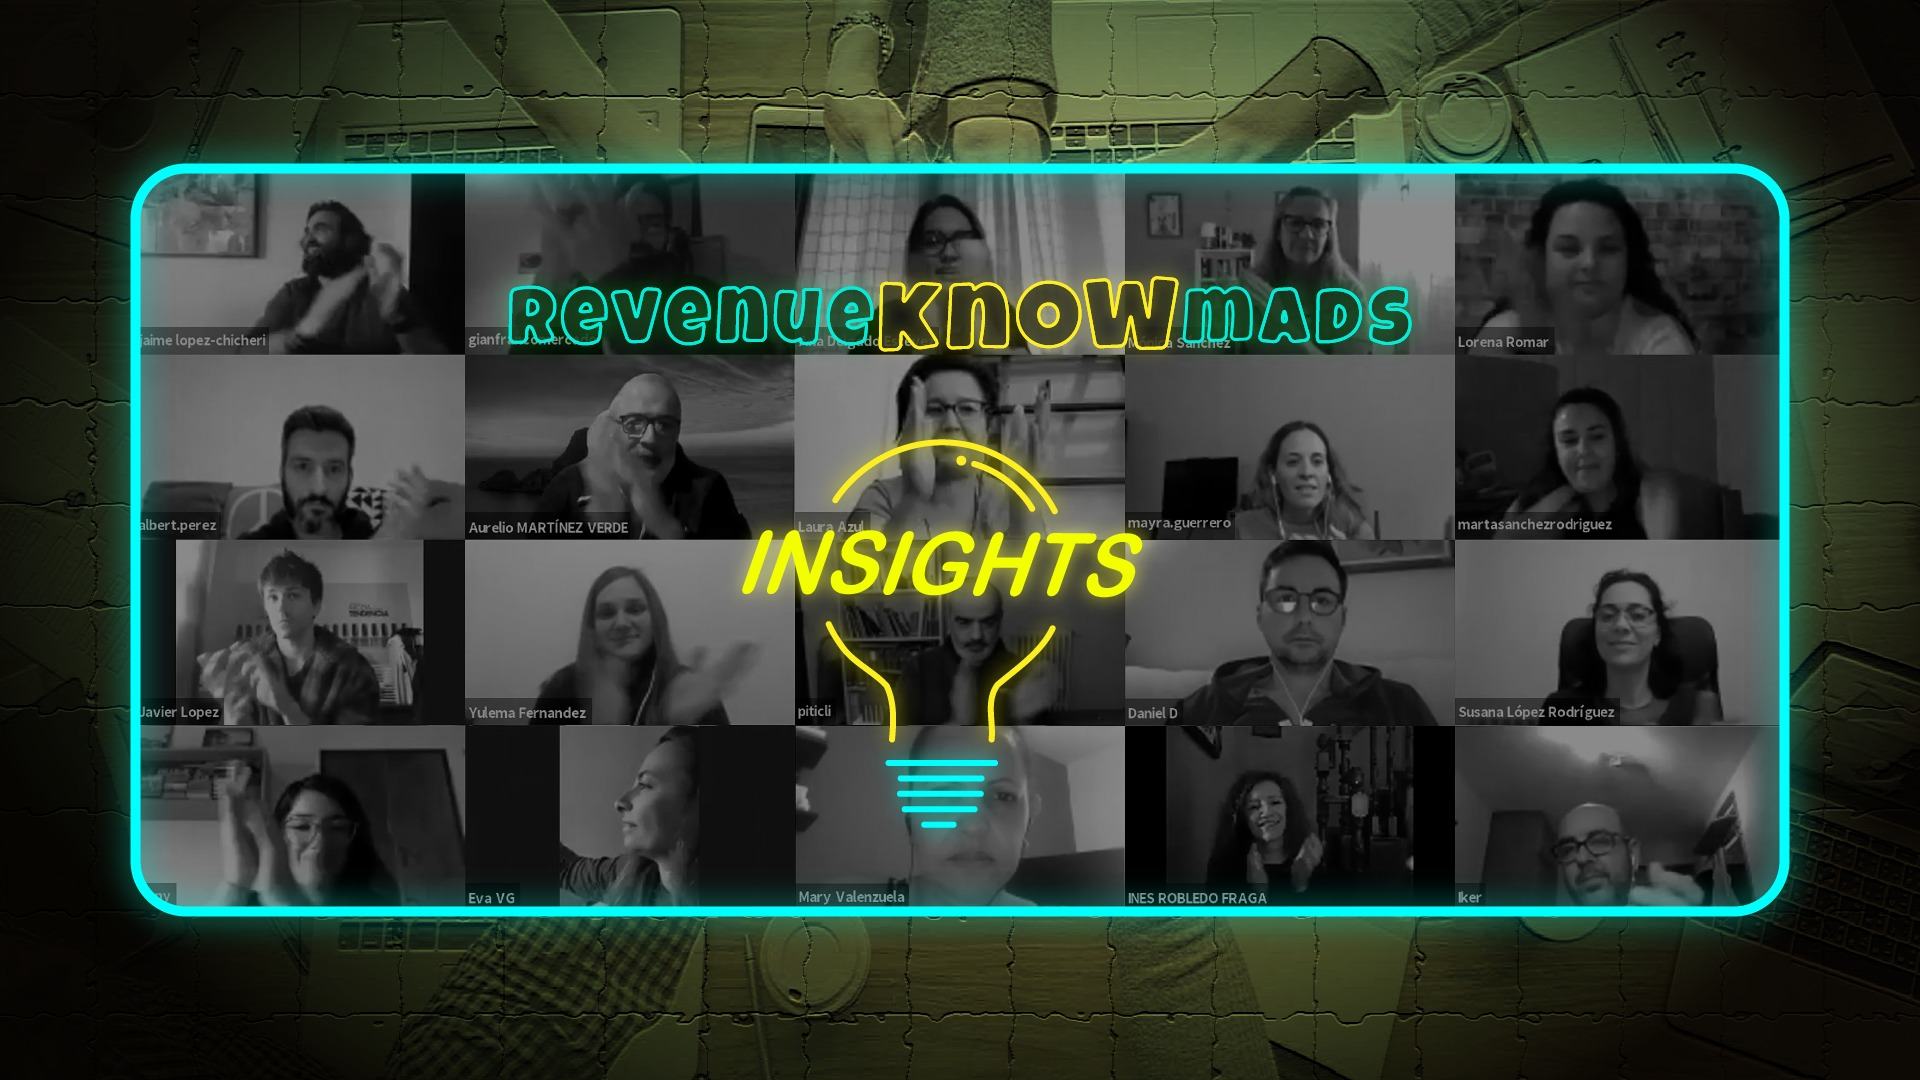 revenueknowmads insights video podcast